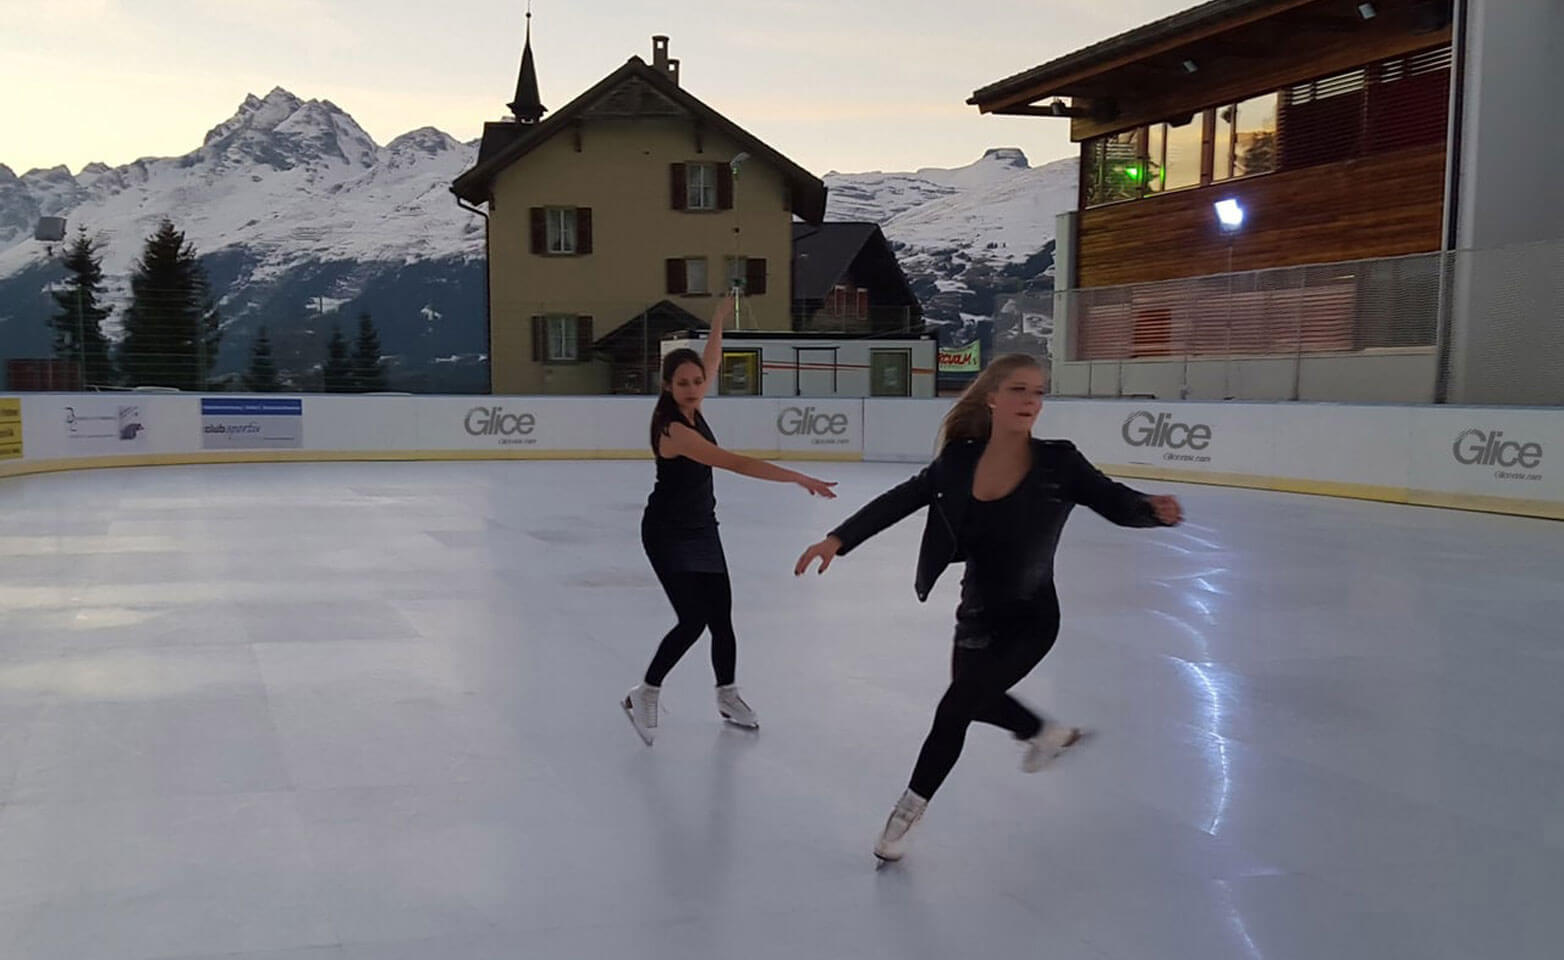 Figure skaters on artificial ice rink at famous Swiss ski resort